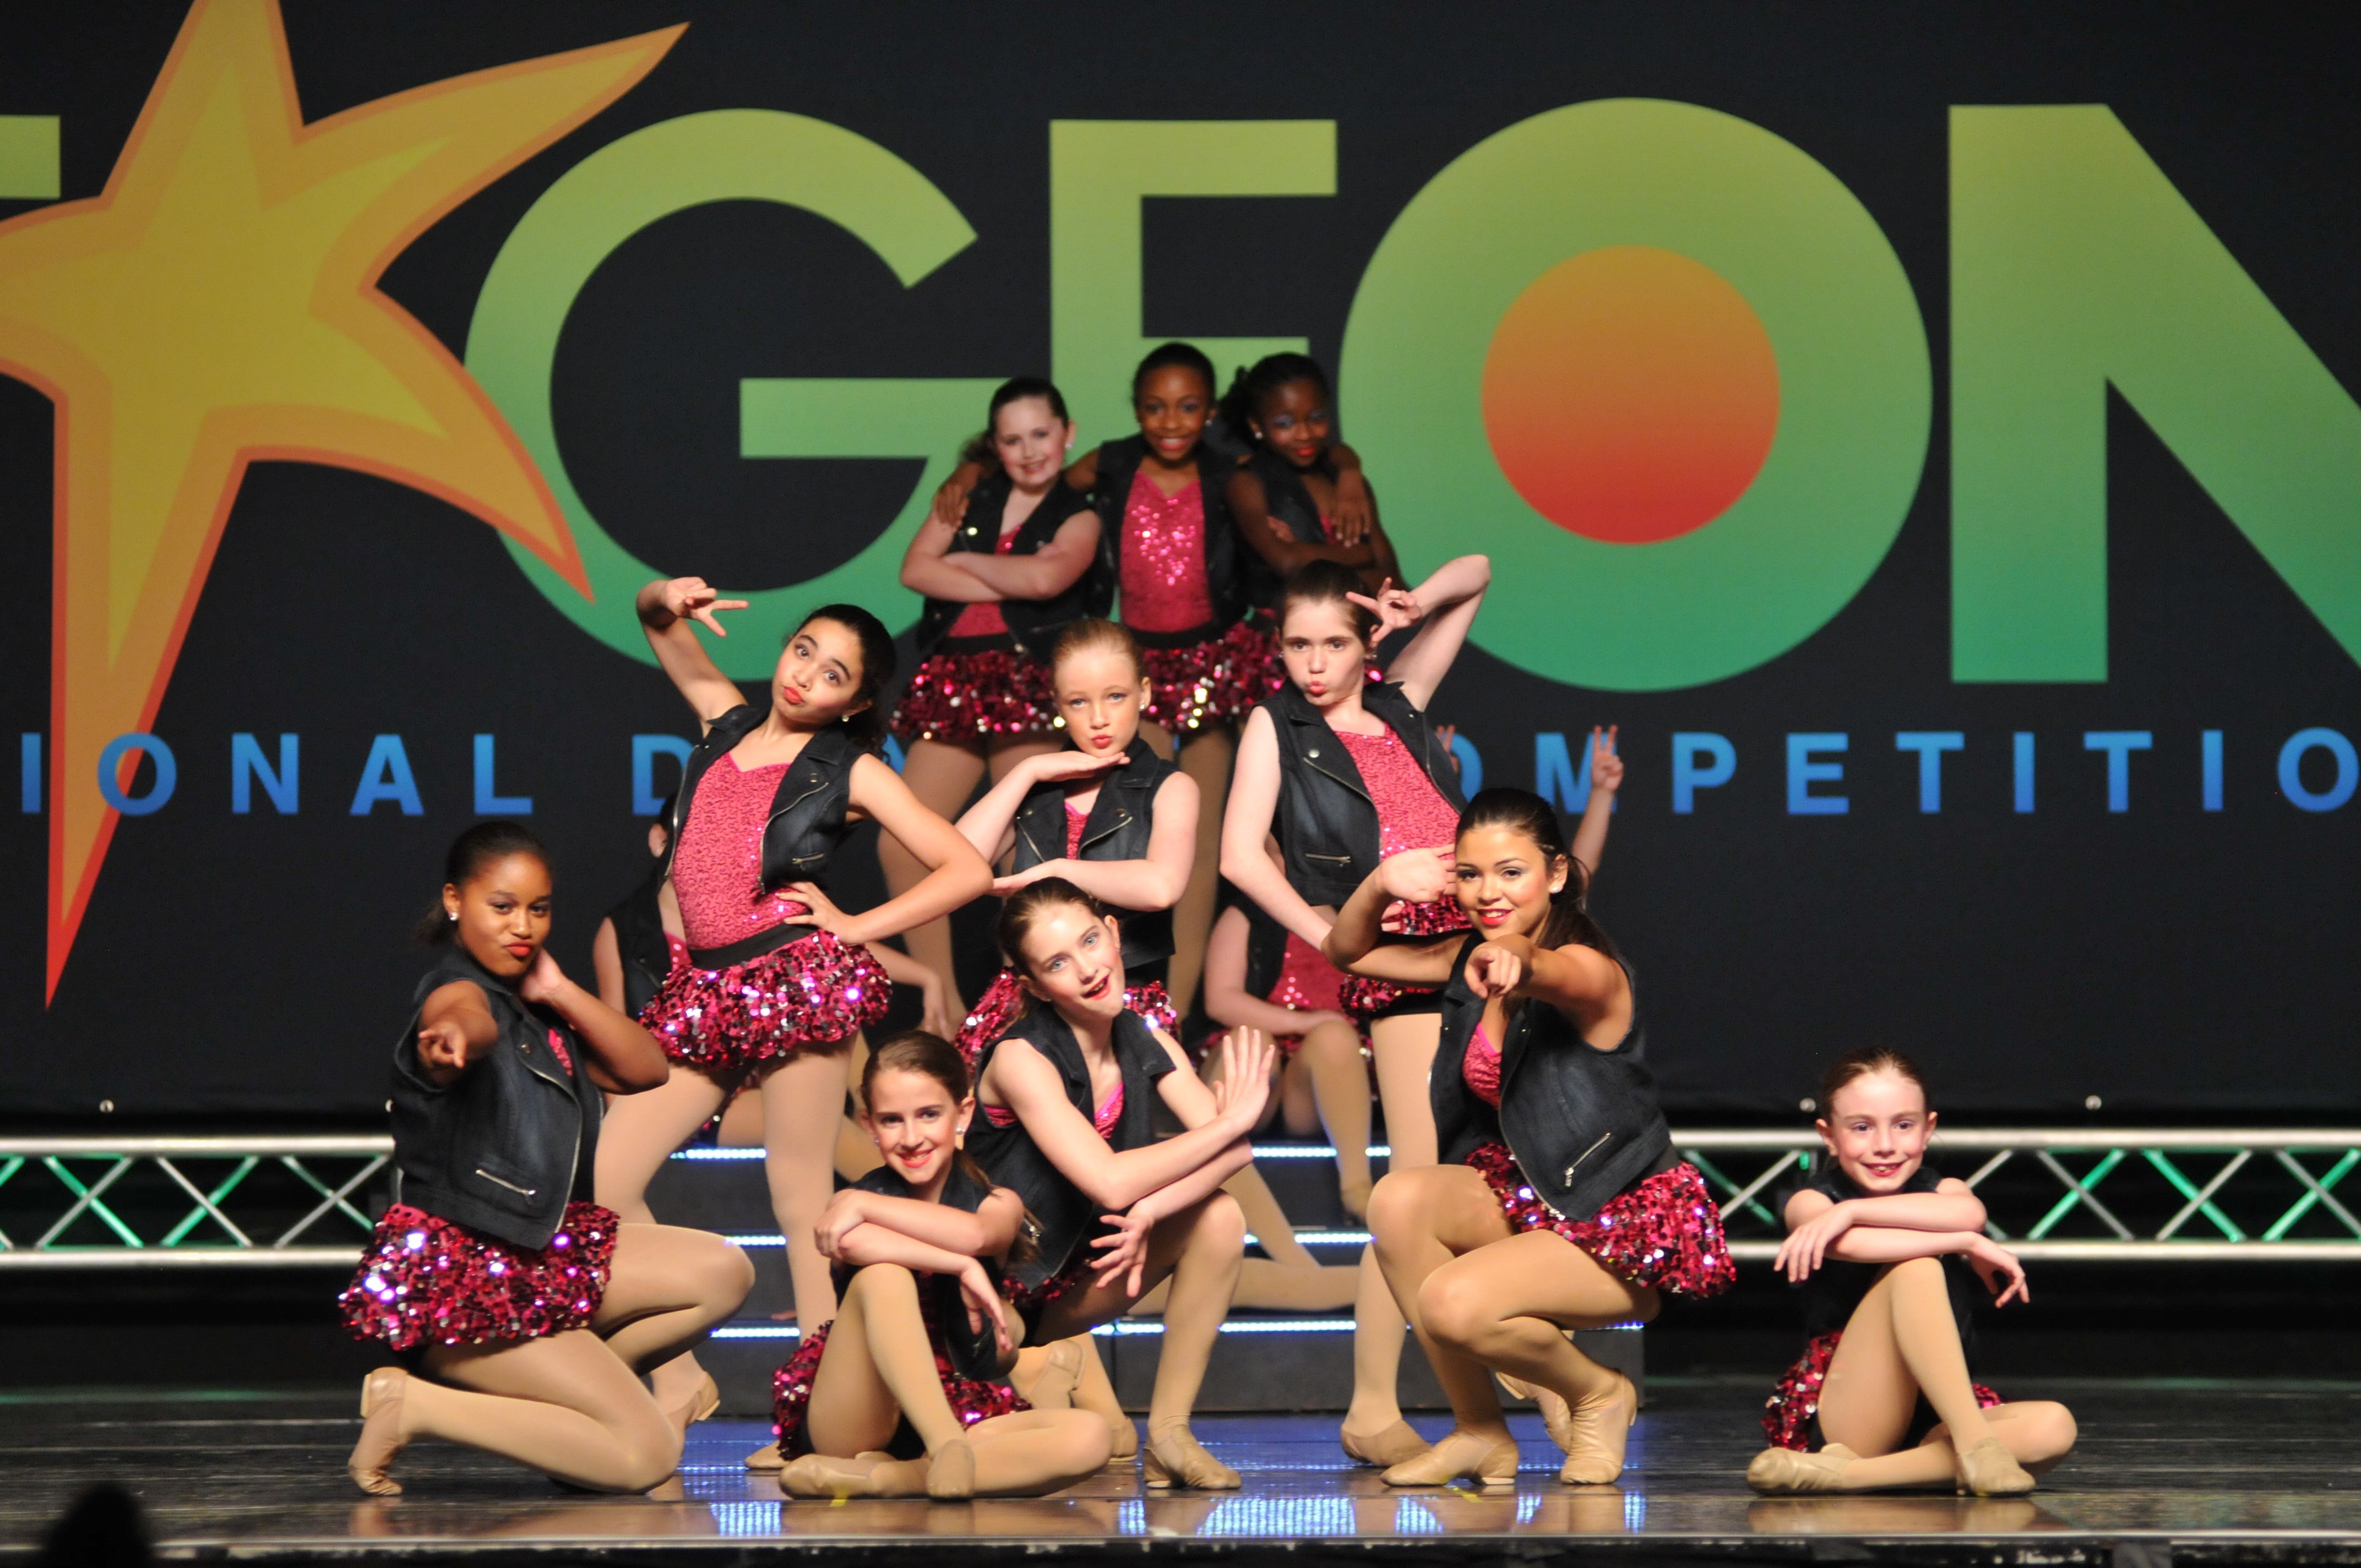 Congrats GDU Performing Company! Good luck at Nationals in Gatlinburg TN in June!